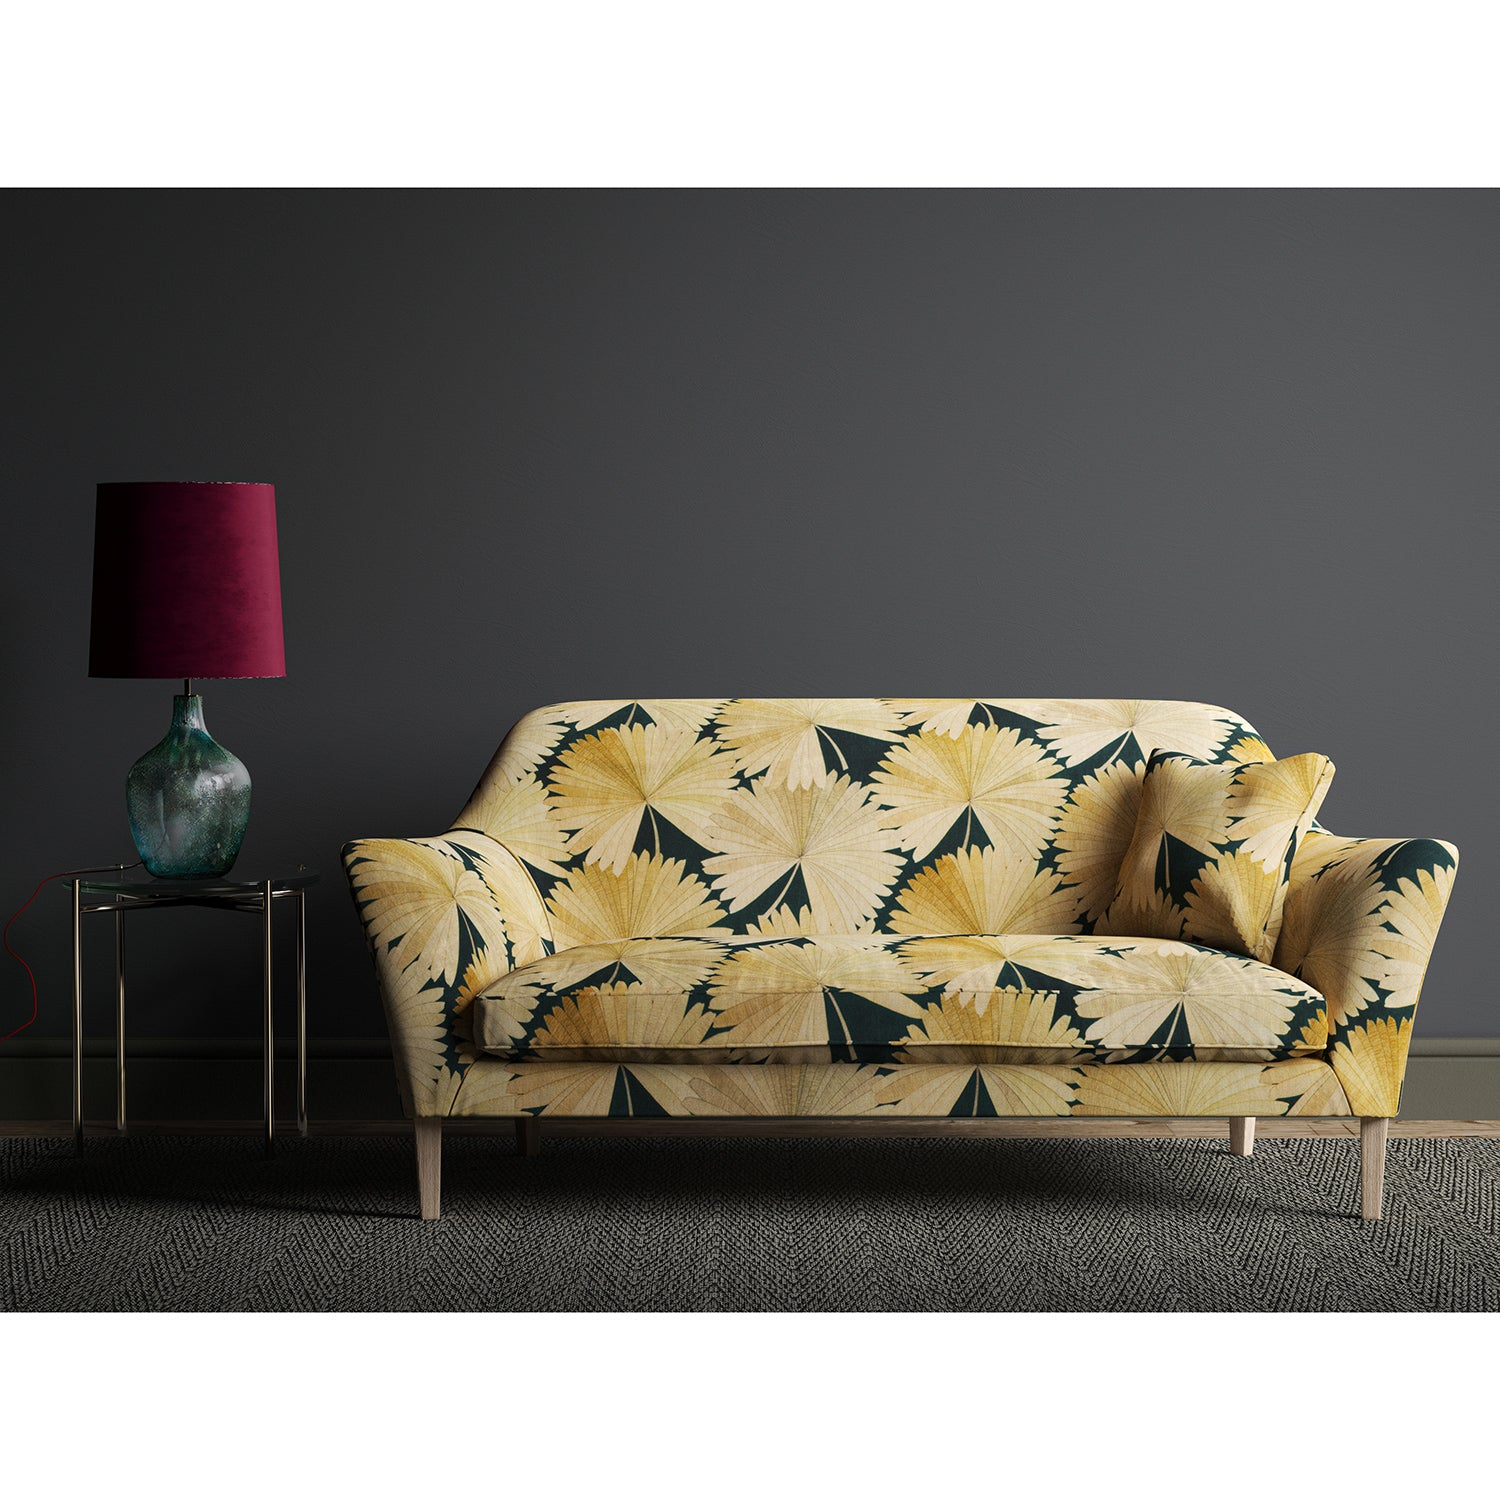 Sofa in a black and neutral fan print fabric